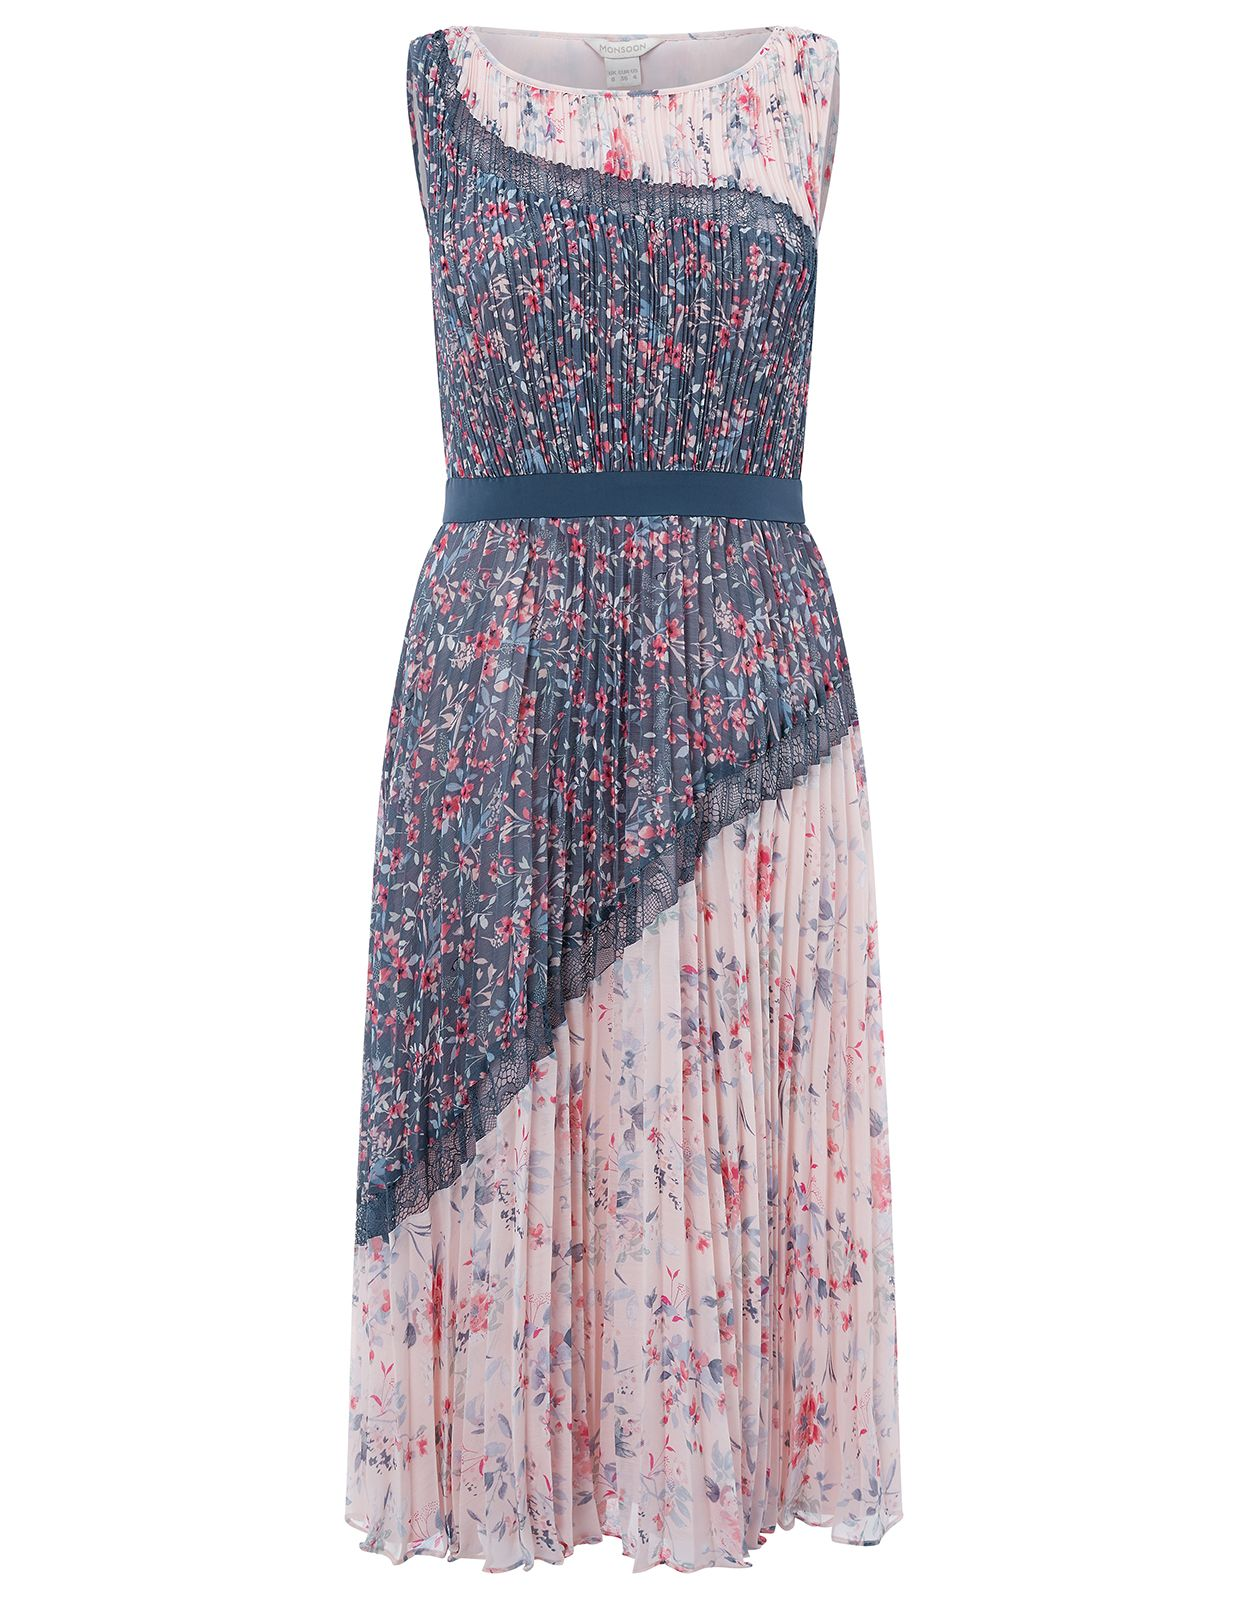 Monsoon Blossom Print Pleated Midi Dress, Multi-Coloured